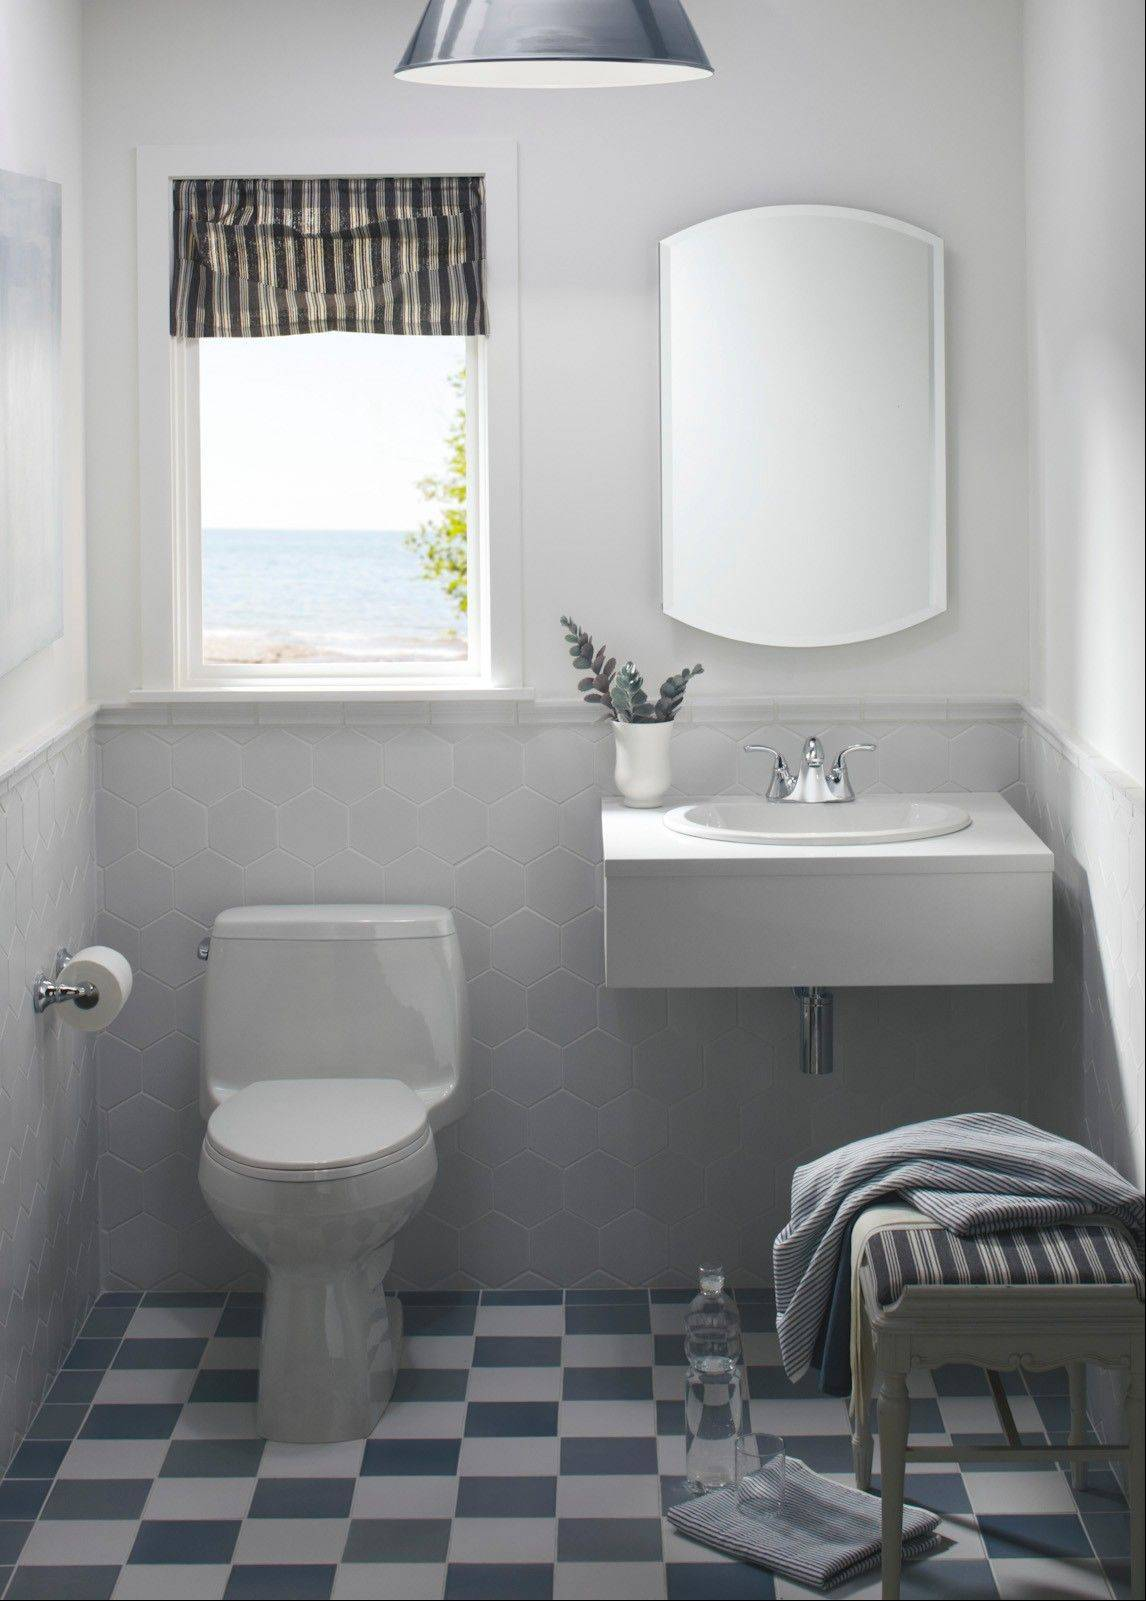 Since toilets come in two basic sizes, check out your space before you buy one.